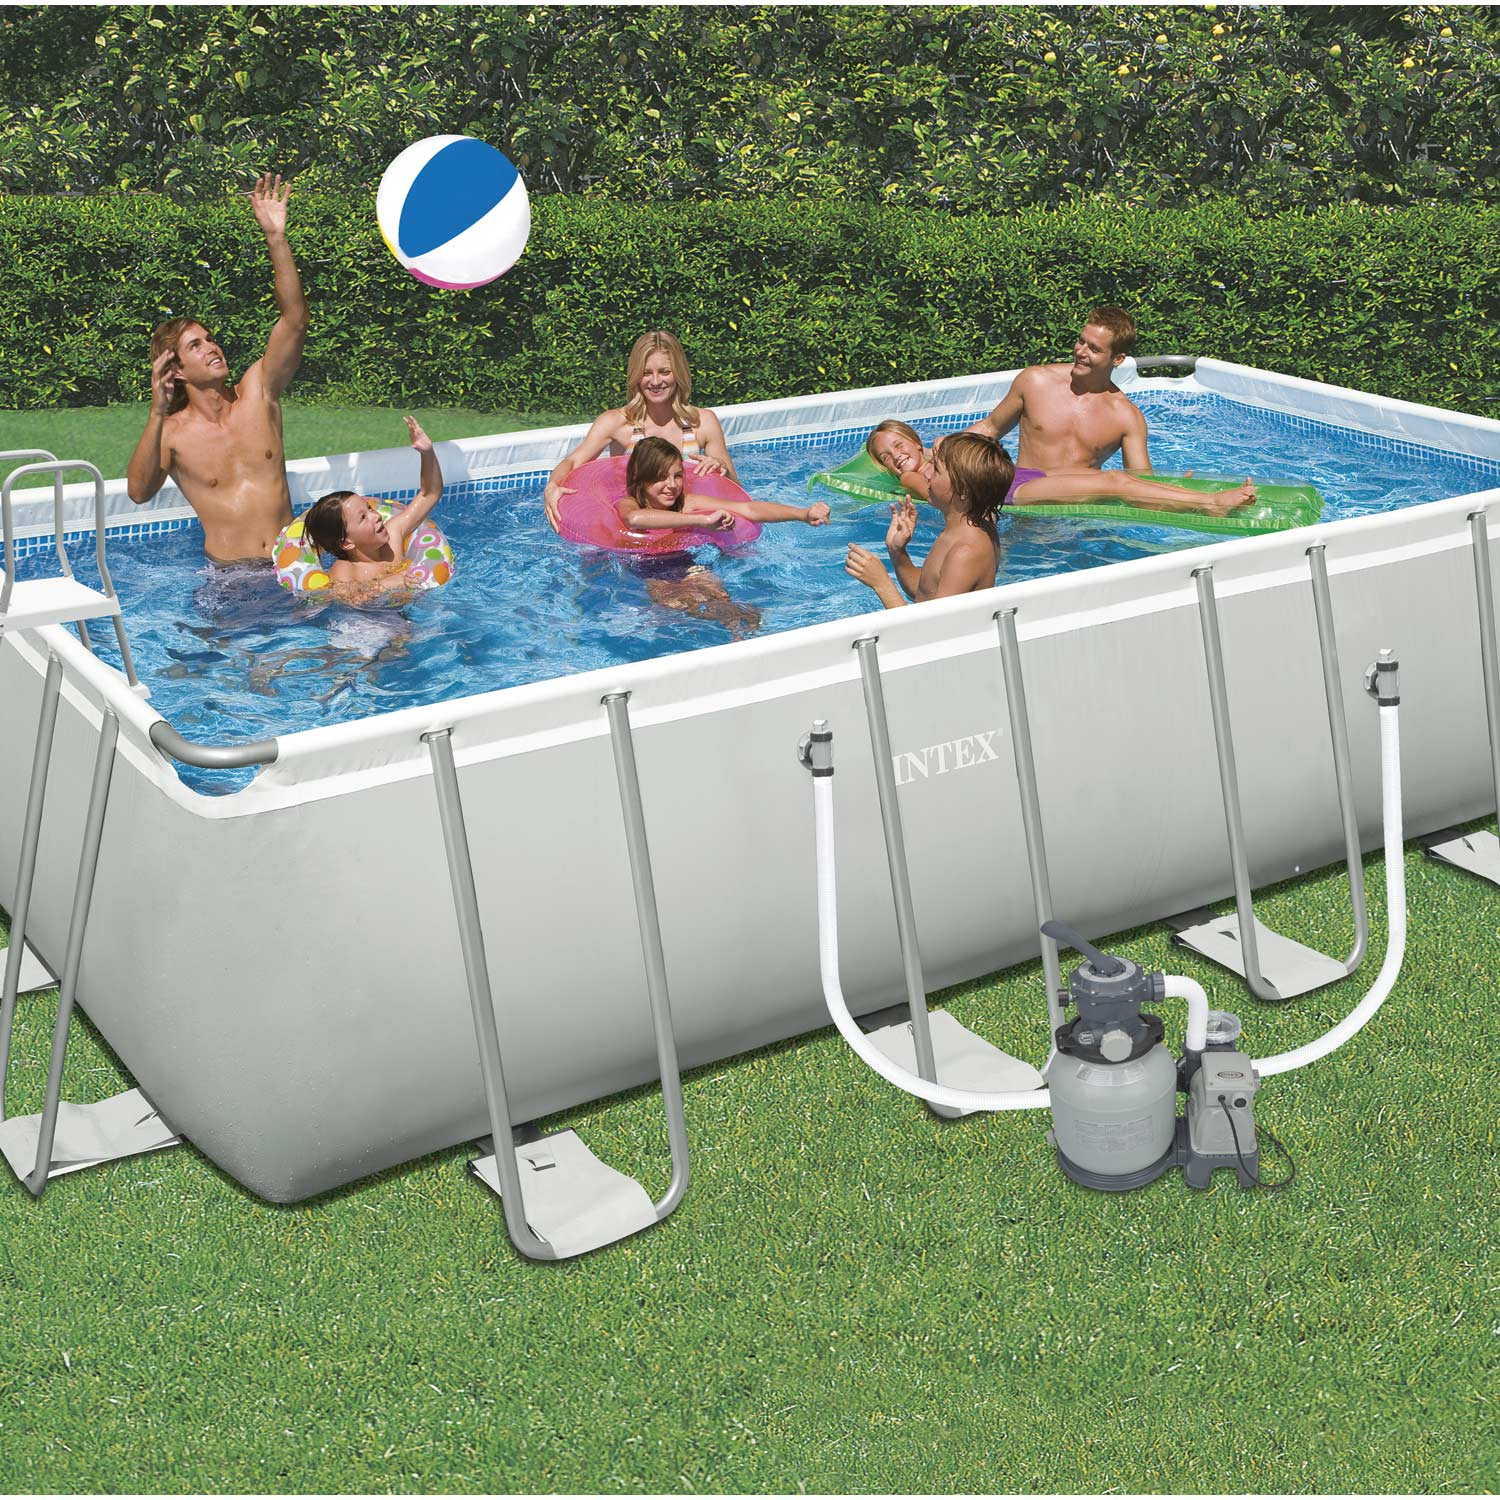 Piscine hors sol autoportante tubulaire ultra silver intex for Piscine hors sol laghetto